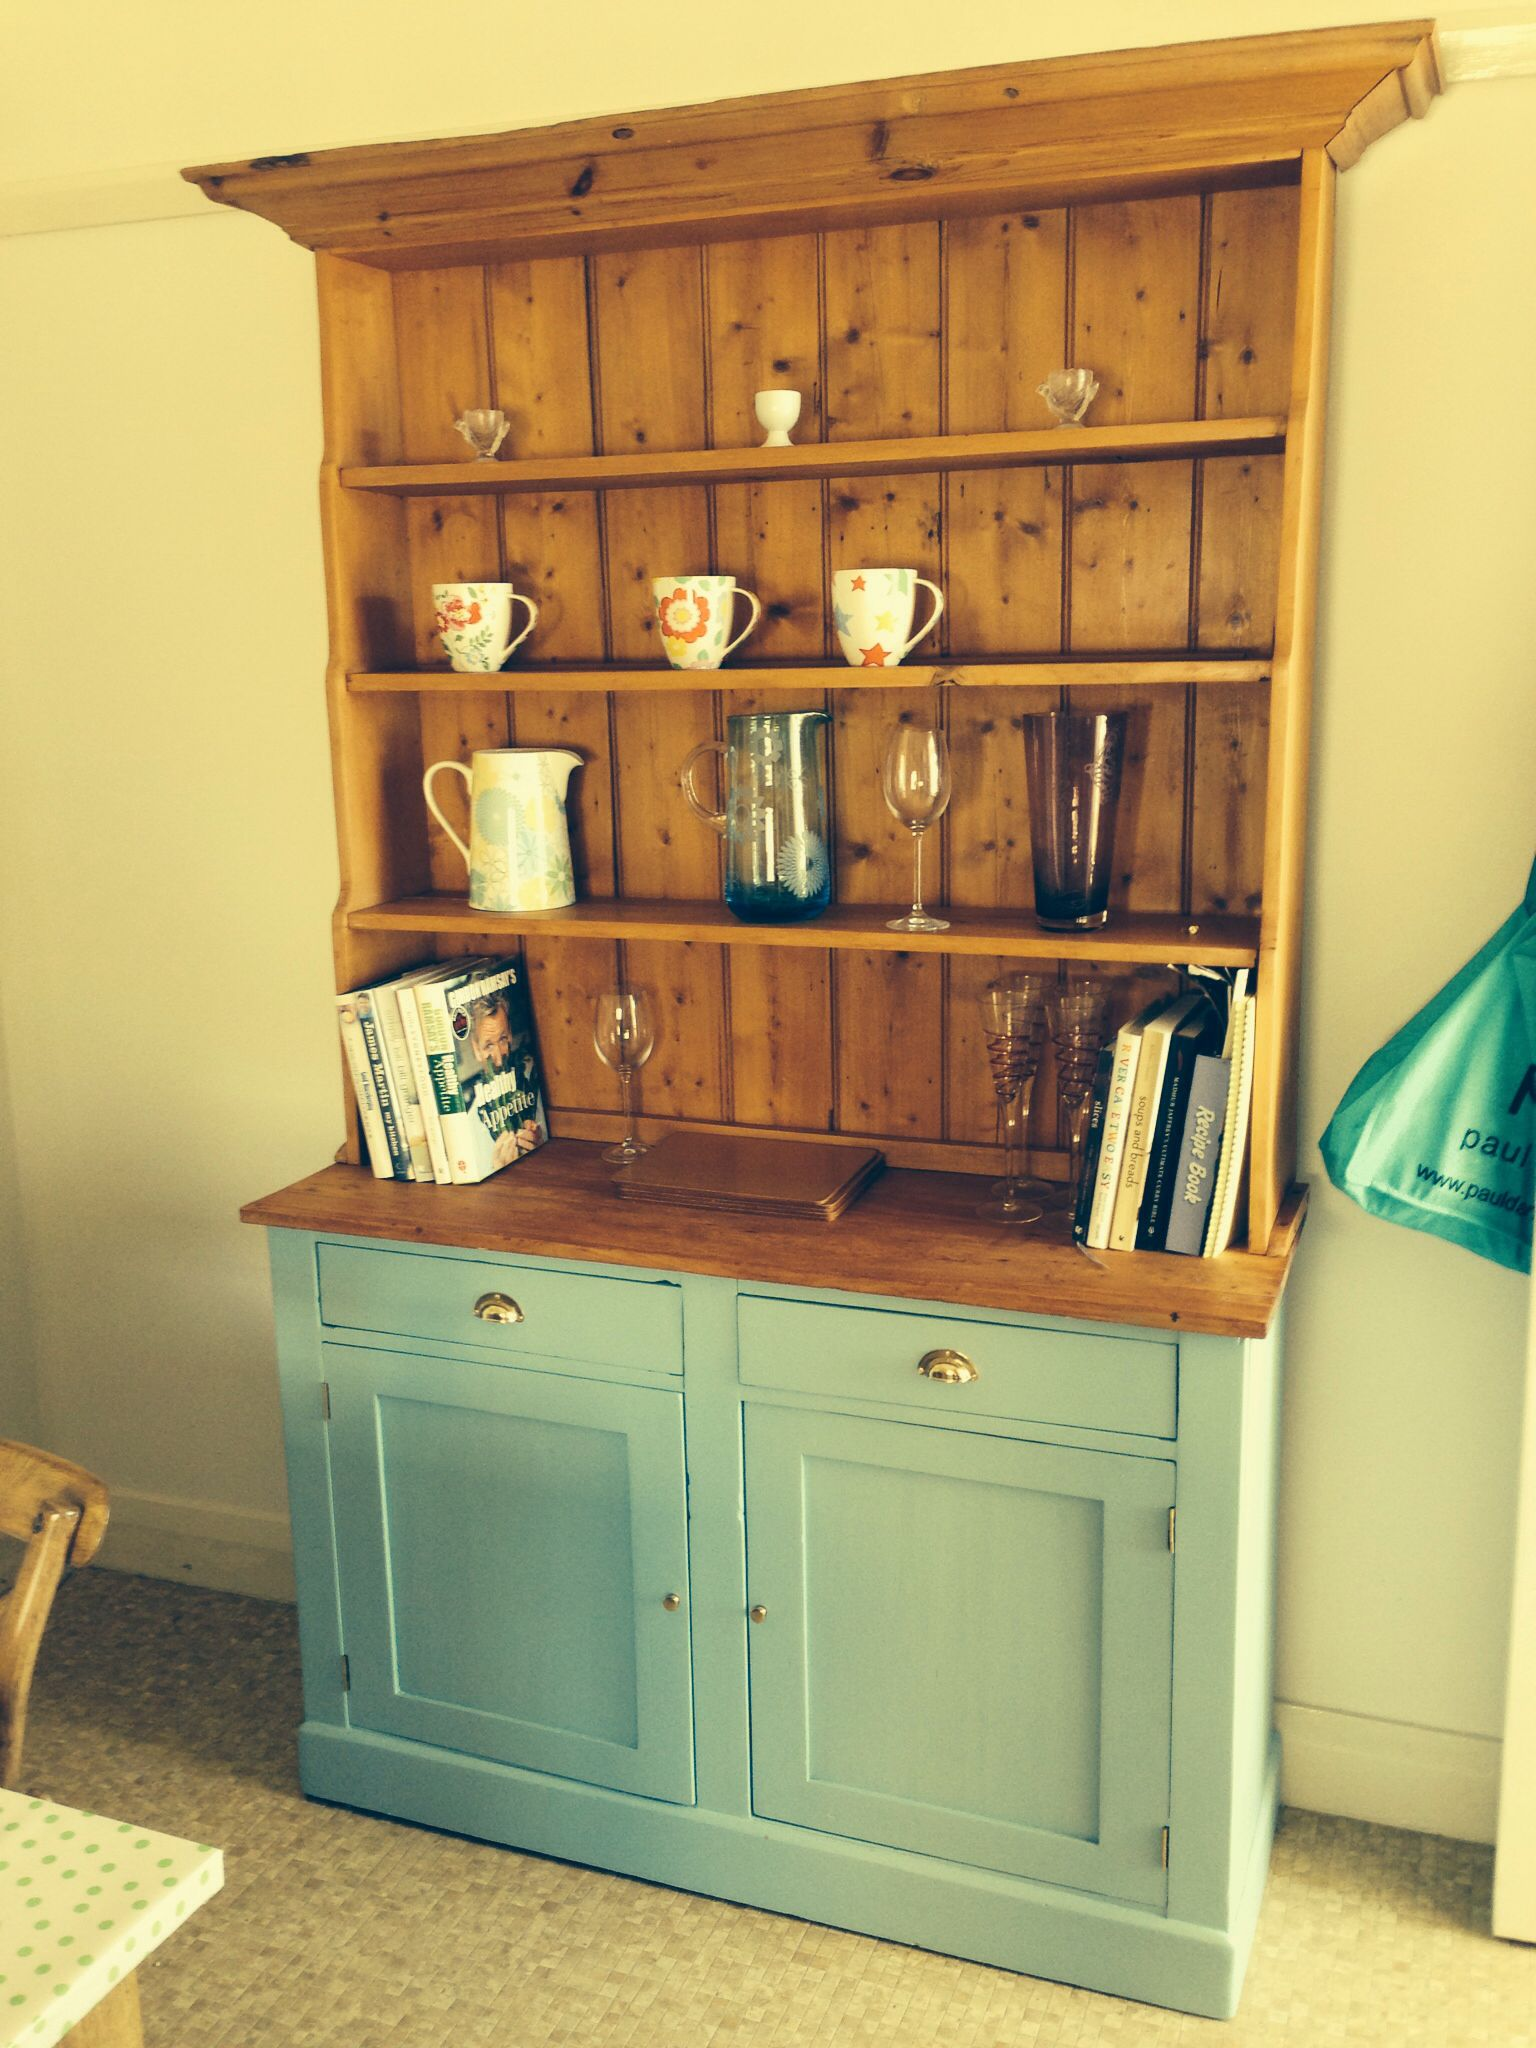 Finally finished! My new (old) kitchen dresser | Just the way life ...